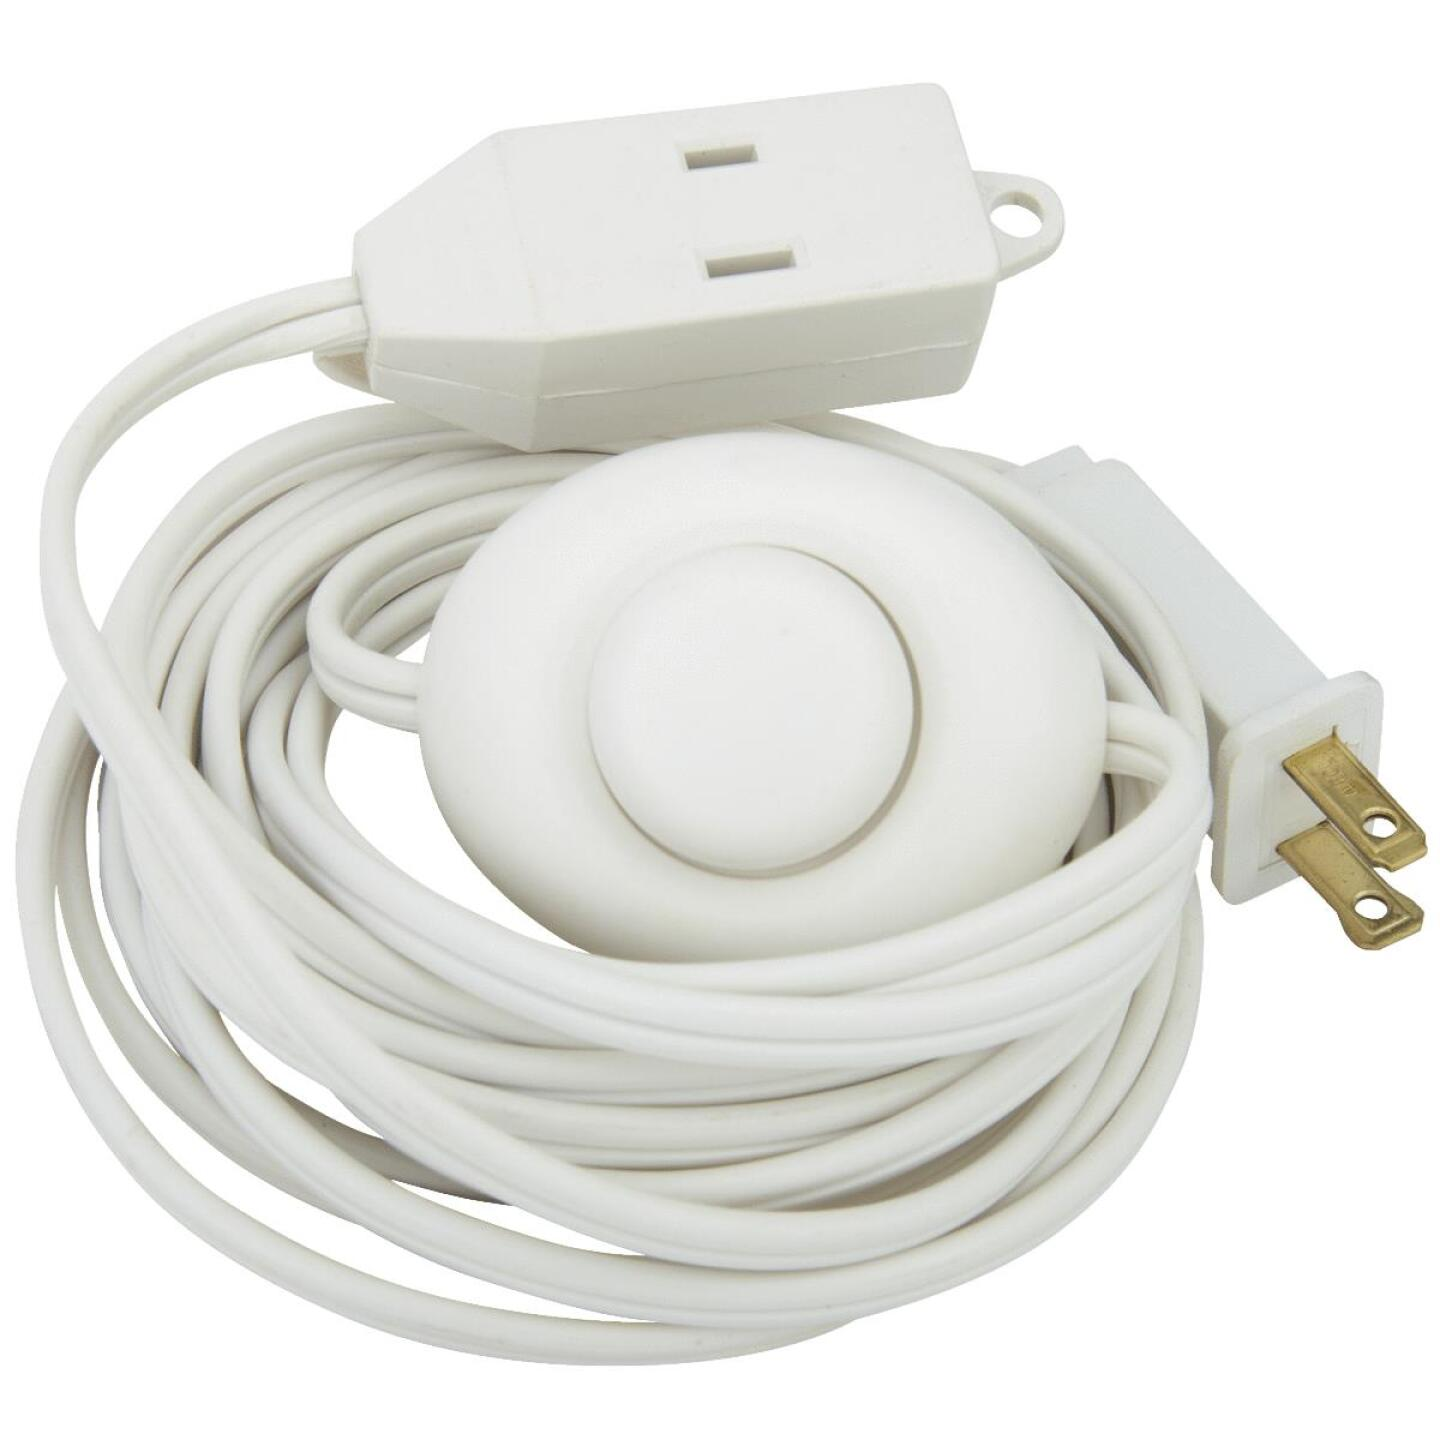 Do it 15 Ft. 18/2 White Extension Cord with Foot Switch Image 5